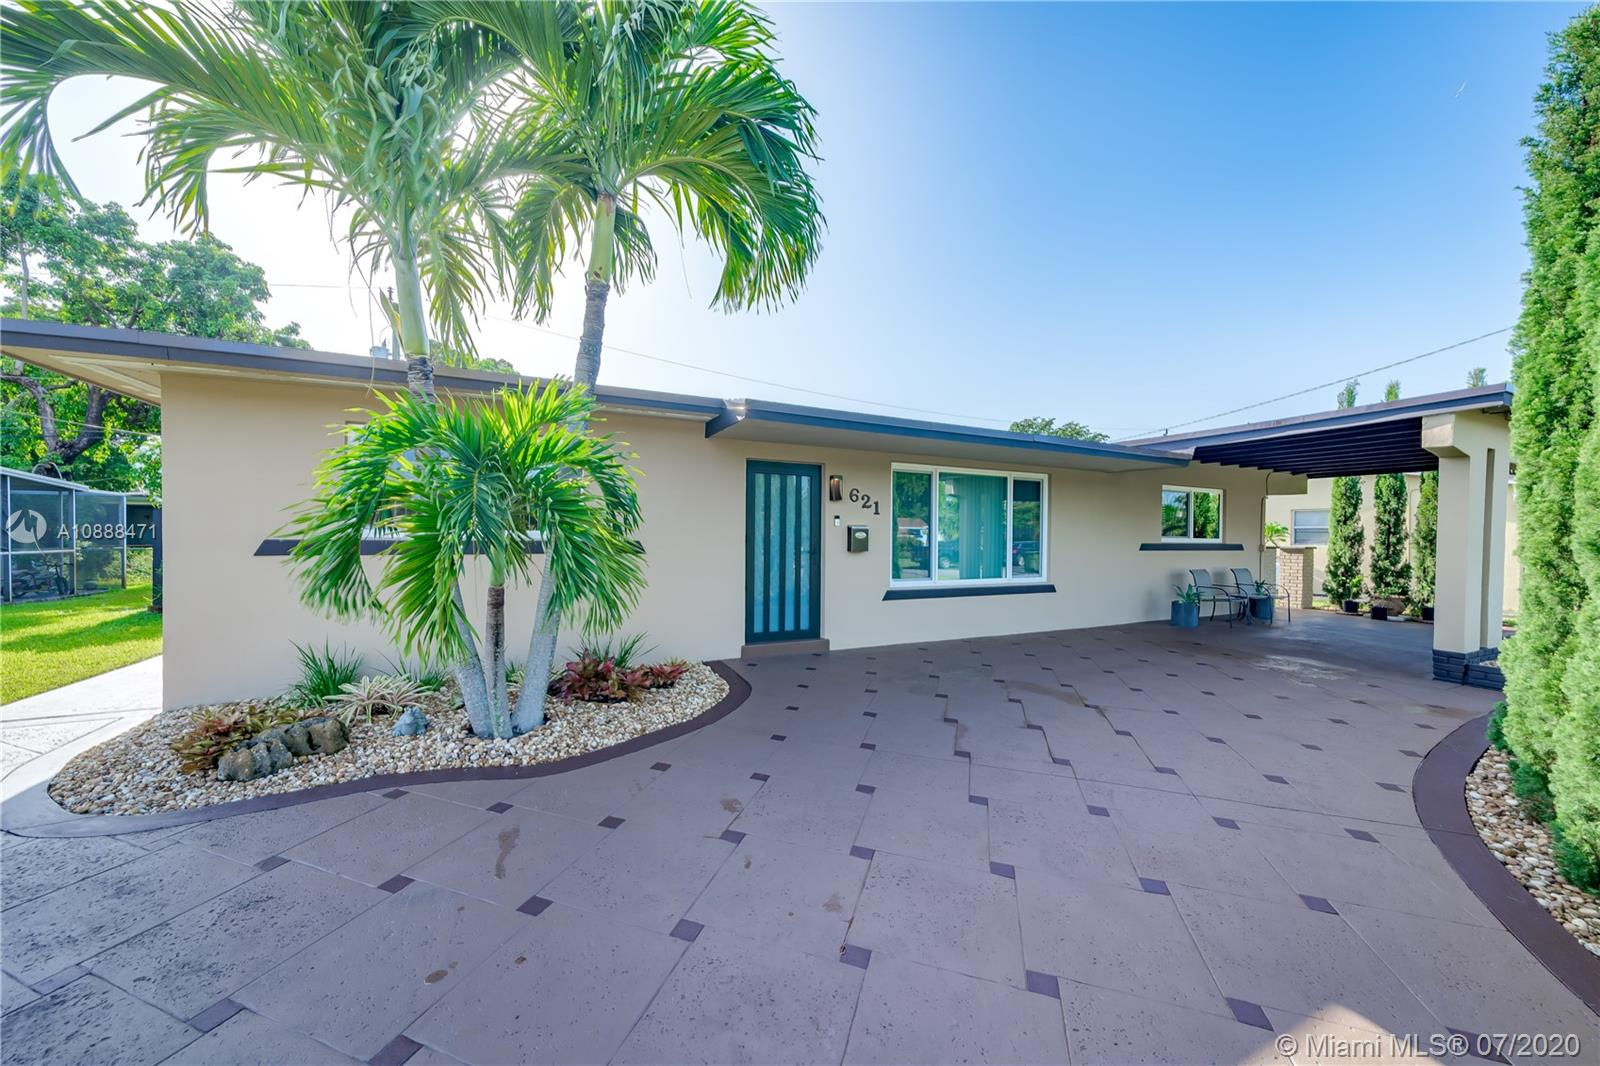 Wow, this is the one you have been waiting for. Move-in ready 3/2 with impact windows, 2-year-old roof, 1-year old A/C, and newer water heater. Home features an open floor plan with huge Florida room, and updated kitchen featuring granite counters, wood cabinets, and s/s appliances. Both bathrooms have been updated. Beautifully landscaped backyard that is fenced in and has room for a pool if you want to put one in. NO HOA.  Centrally located, 20 minutes to Ft.Lauderdale and 30 minutes to Miami with multiple FWY options. 20 minutes to beaches. Grade school and high school in walking distance. Lots of local sports for kids to join. The list goes on!